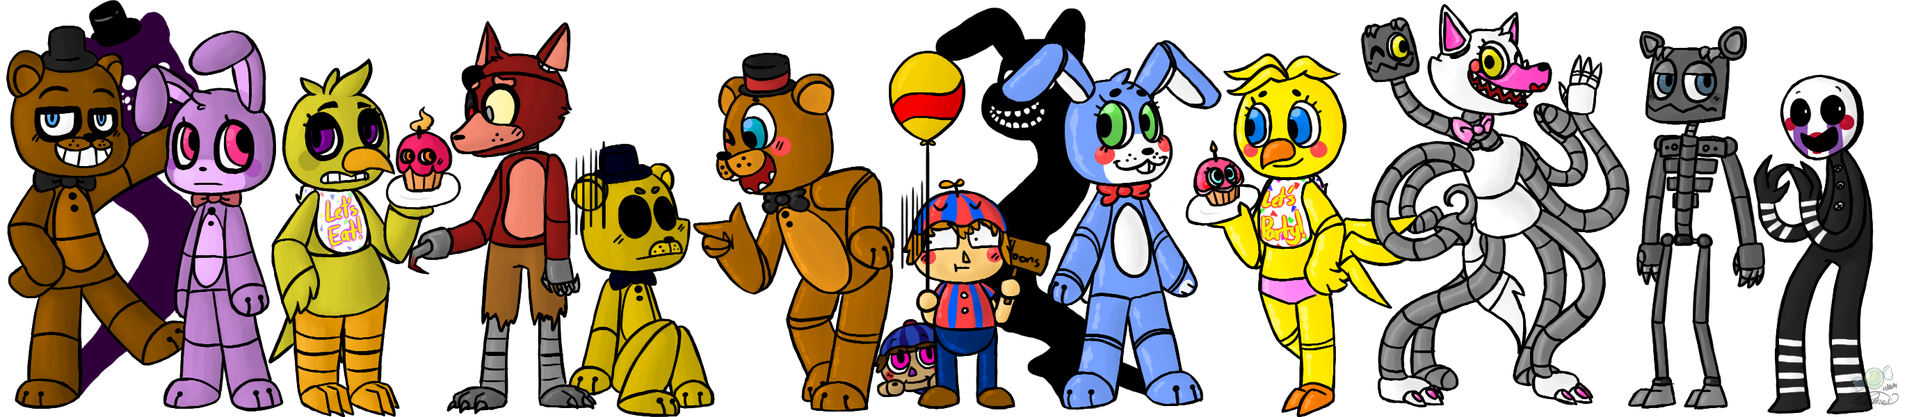 Five Nights at Freddy's /2